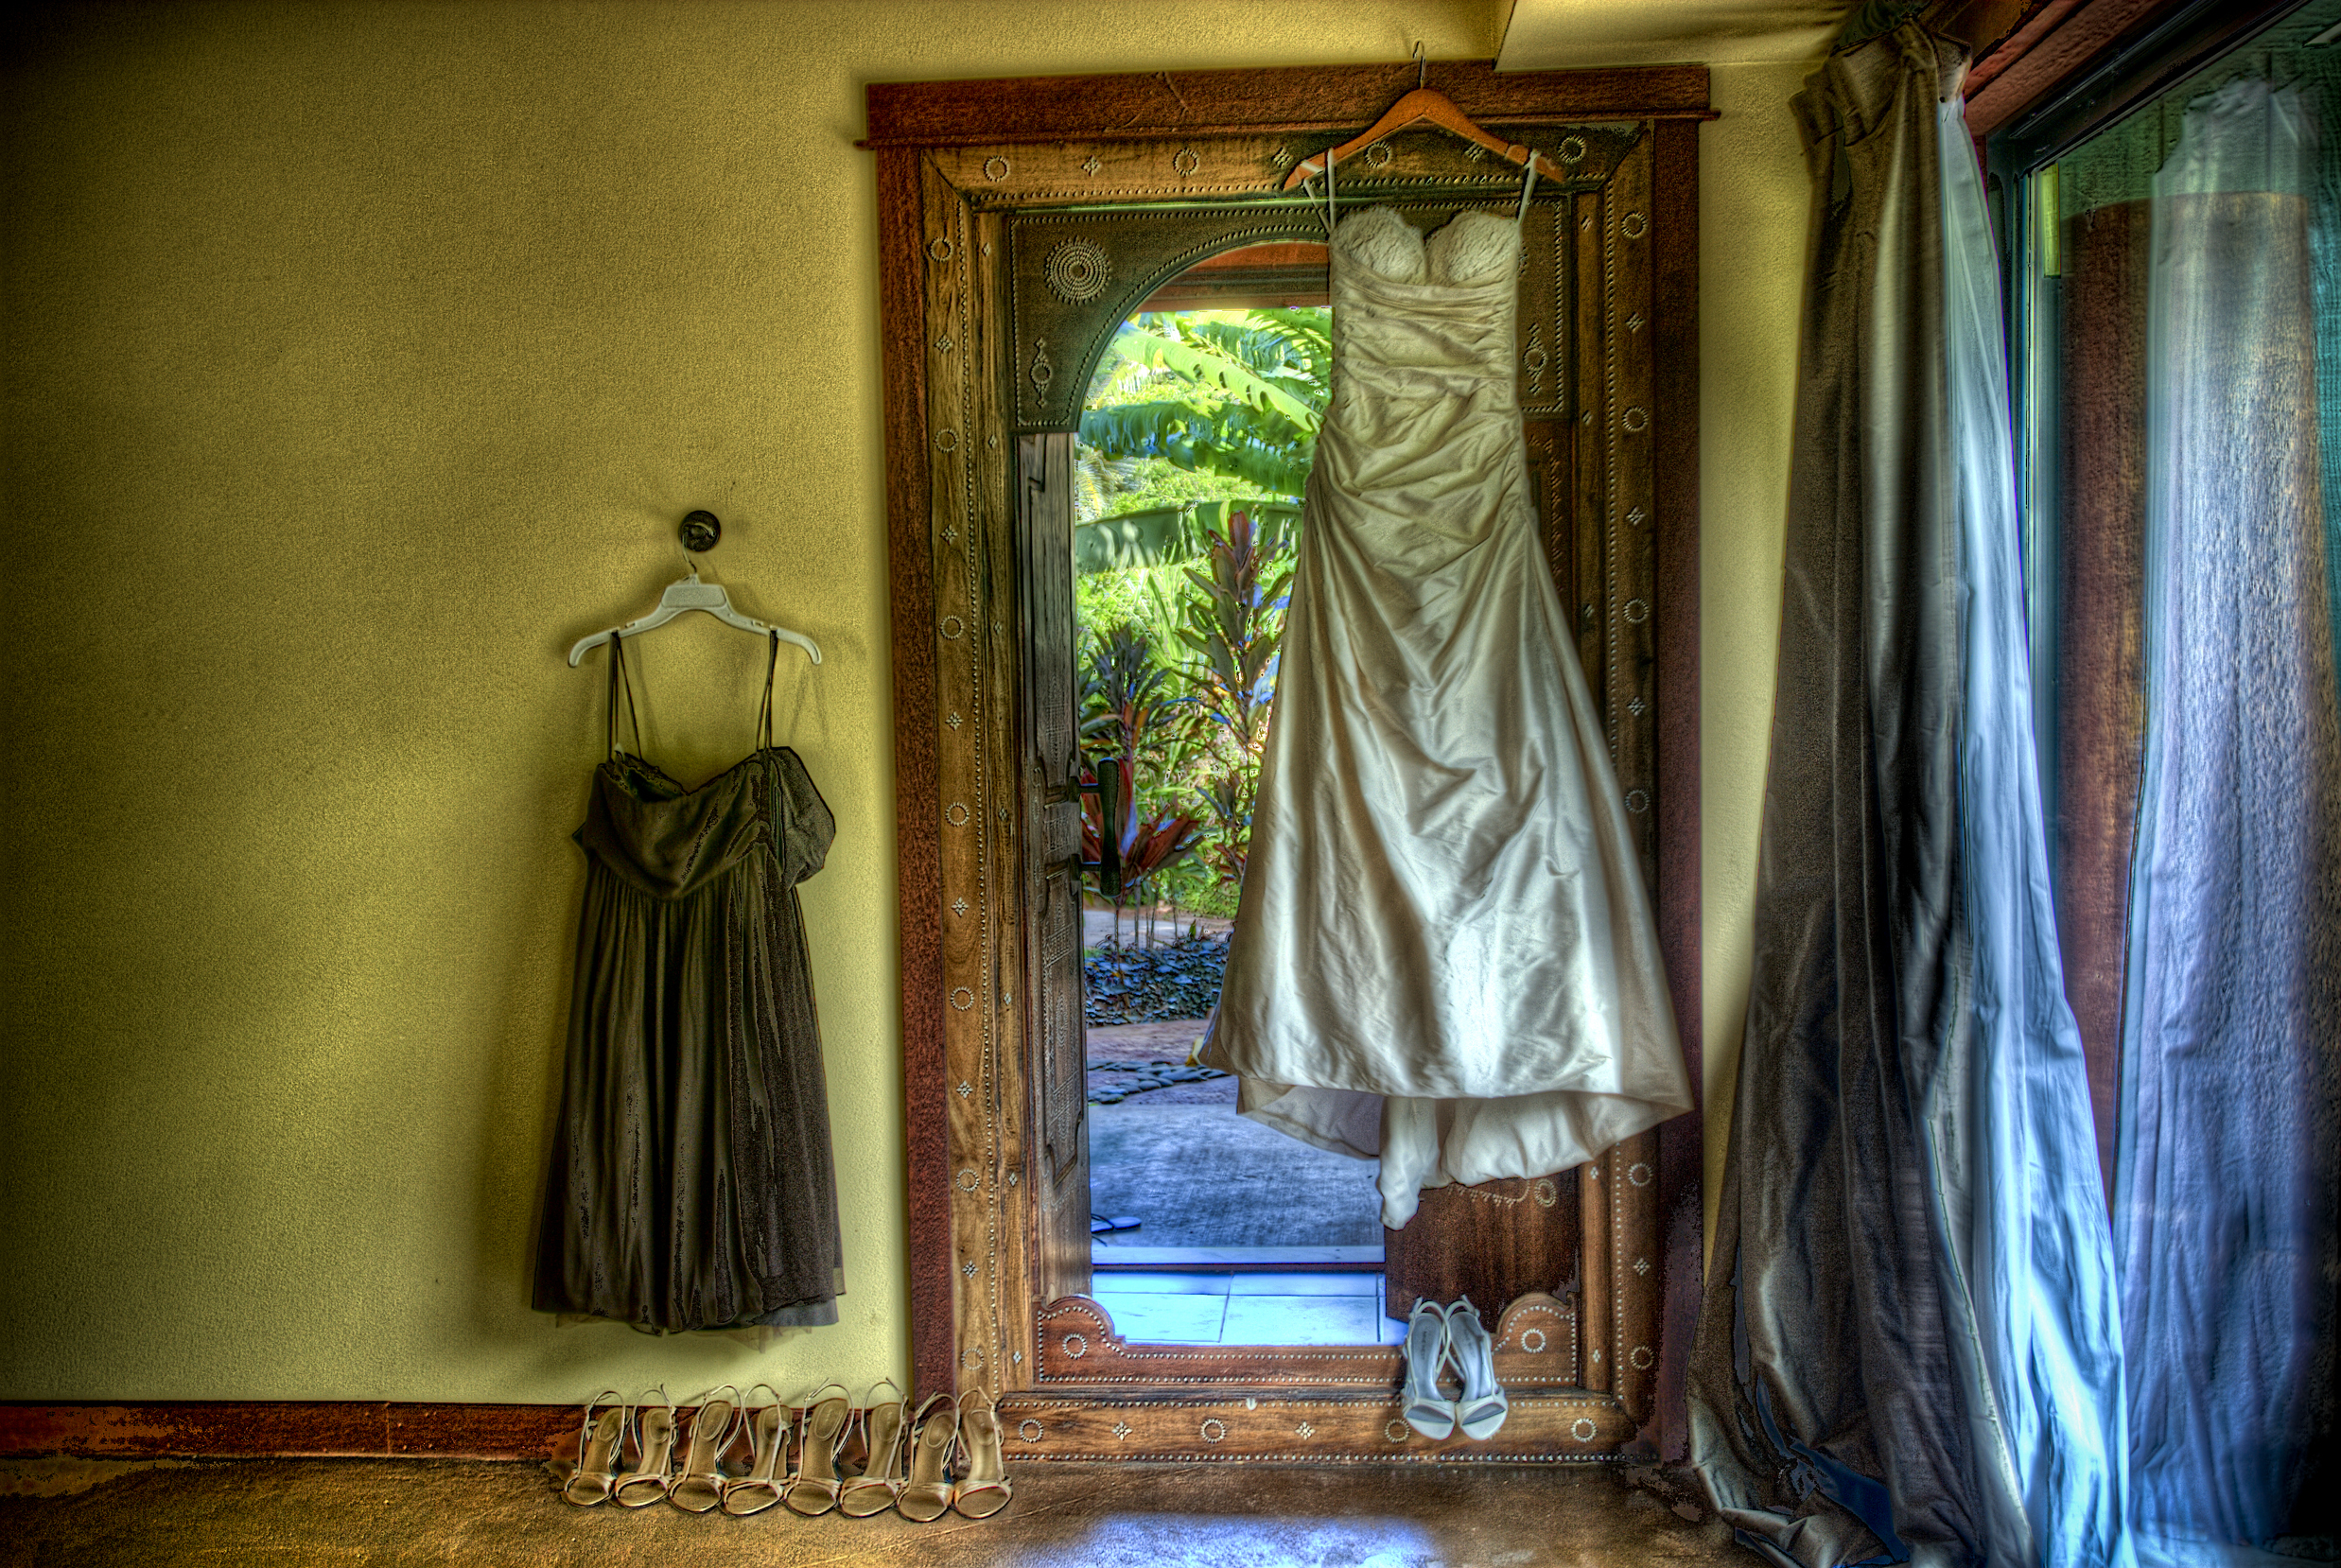 Wedding Dresses, Shoes, Fashion, dress, Details, Sara wall photography, Hdr